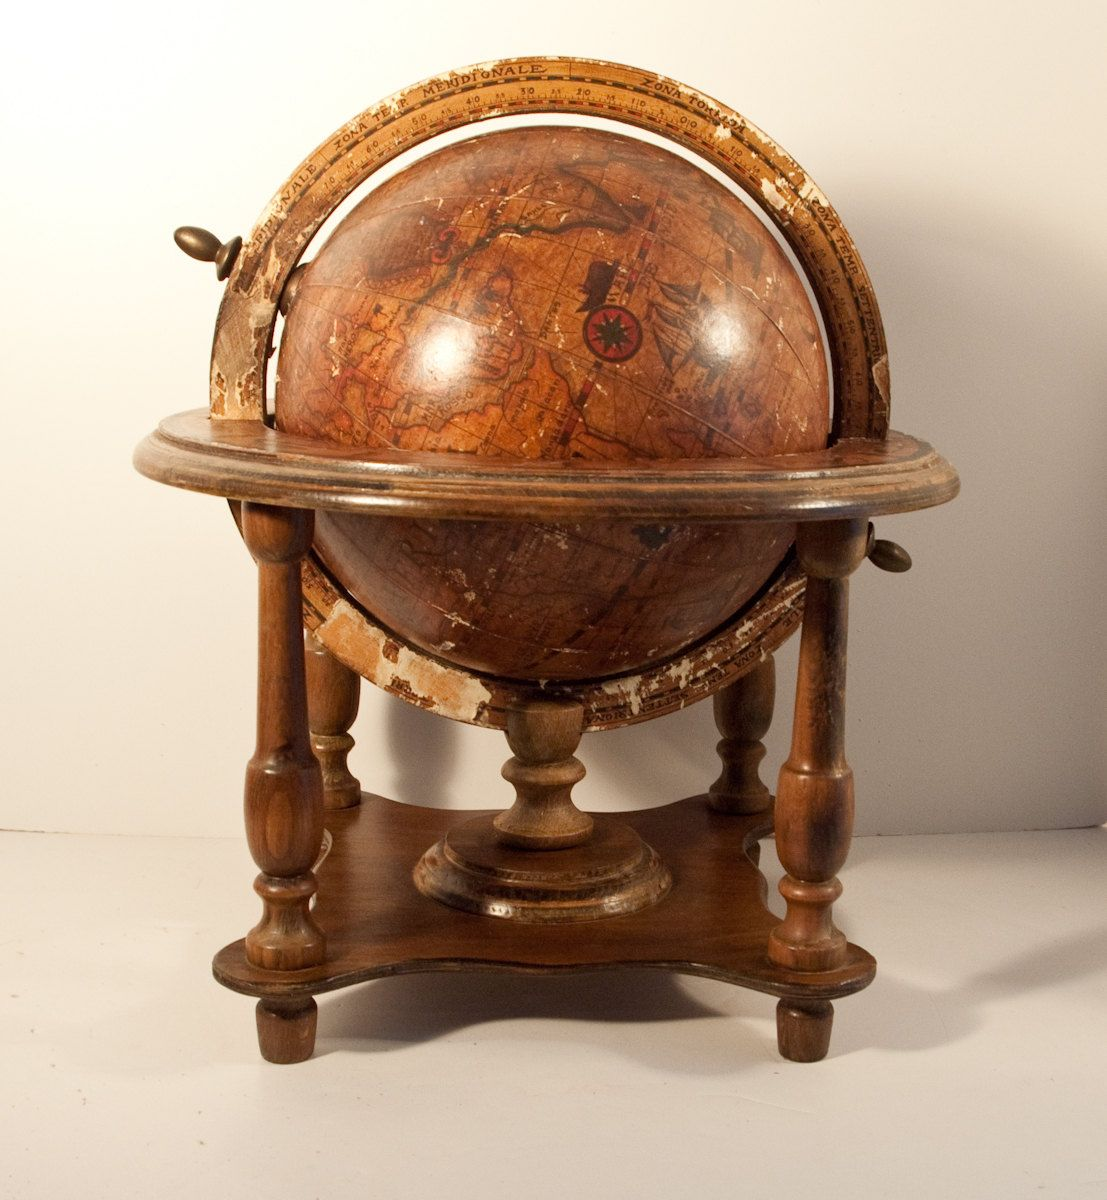 Steampunk Furniture Large Olde World Globe Wooden Stand